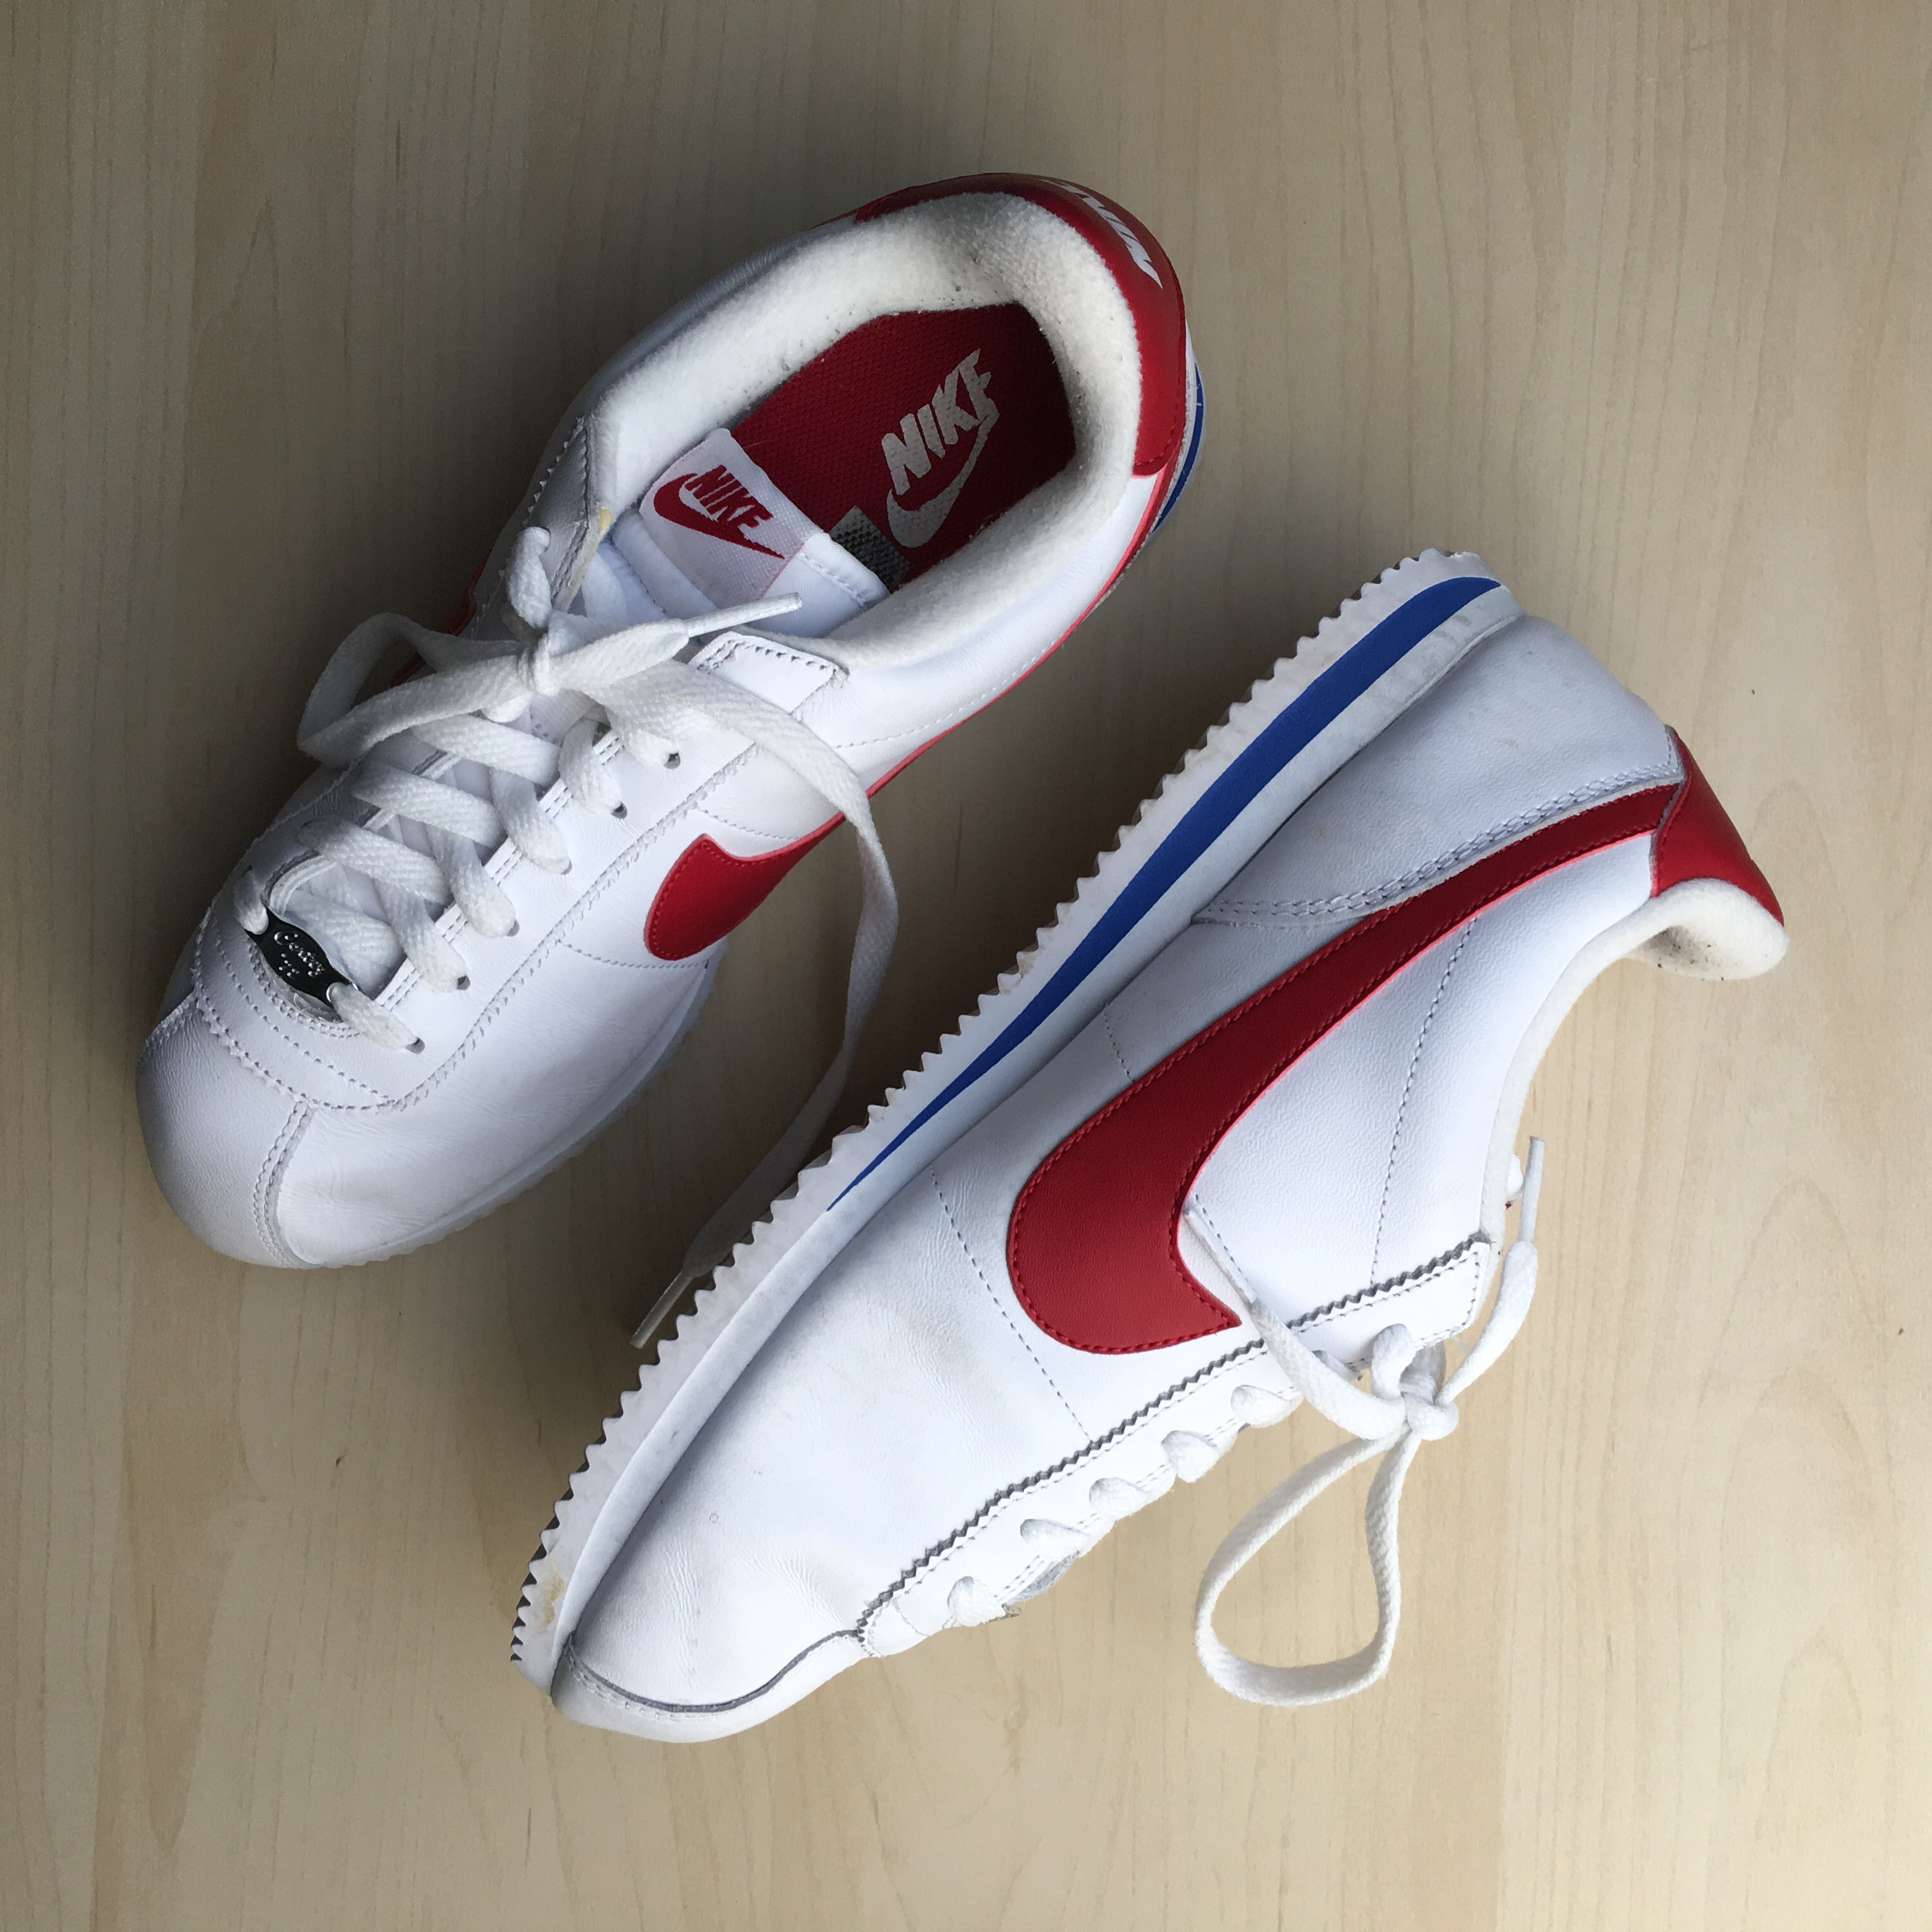 Nike Cortez *Used - Will be cleaned